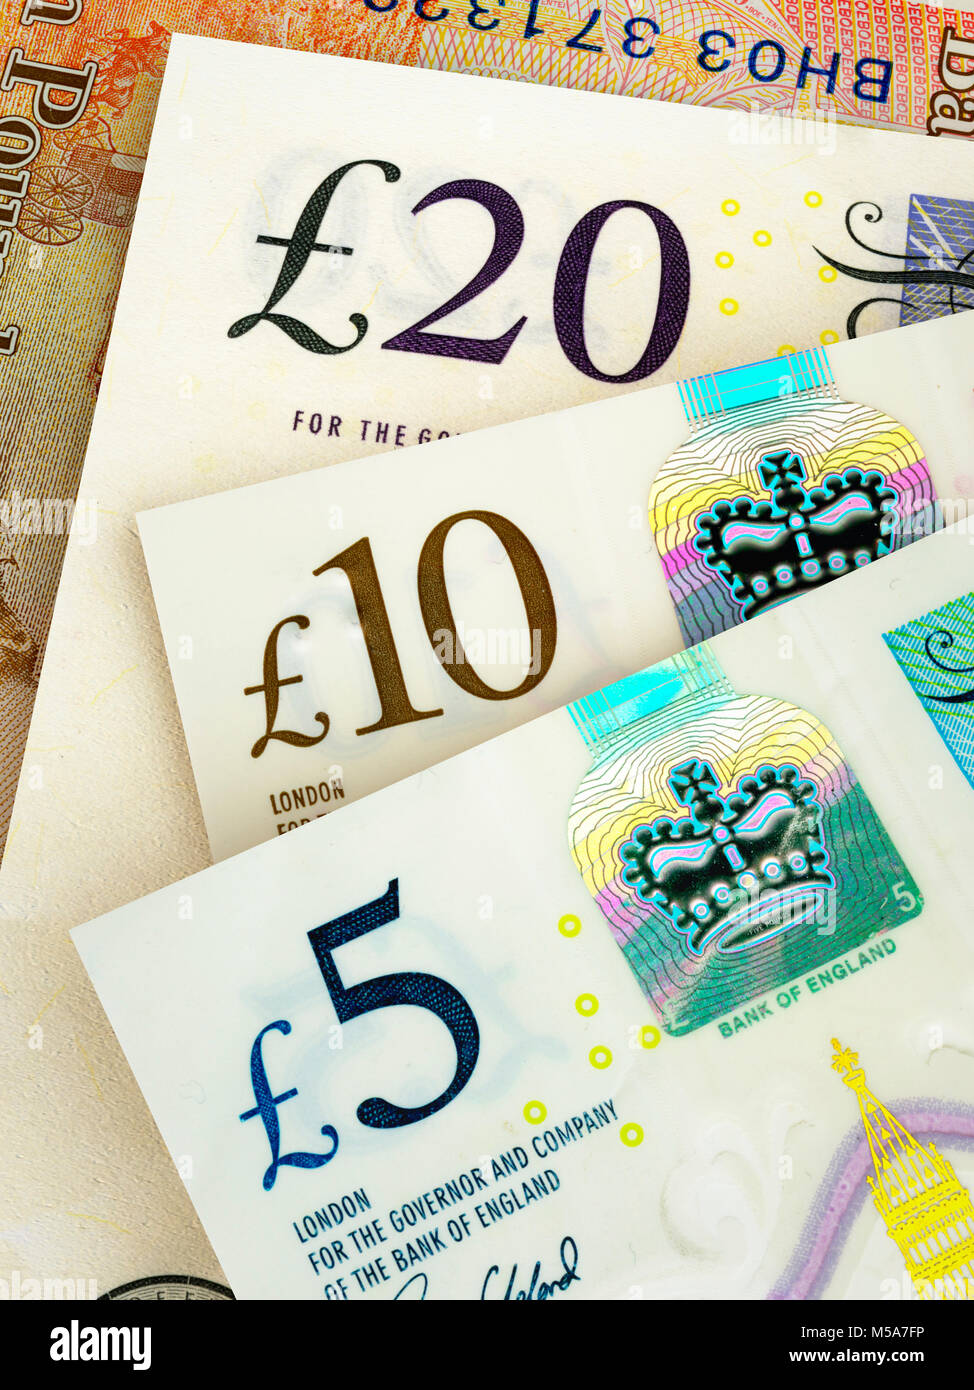 Sterling paper money - new issue £20 £10 and £5 pound notes close up - Stock Image